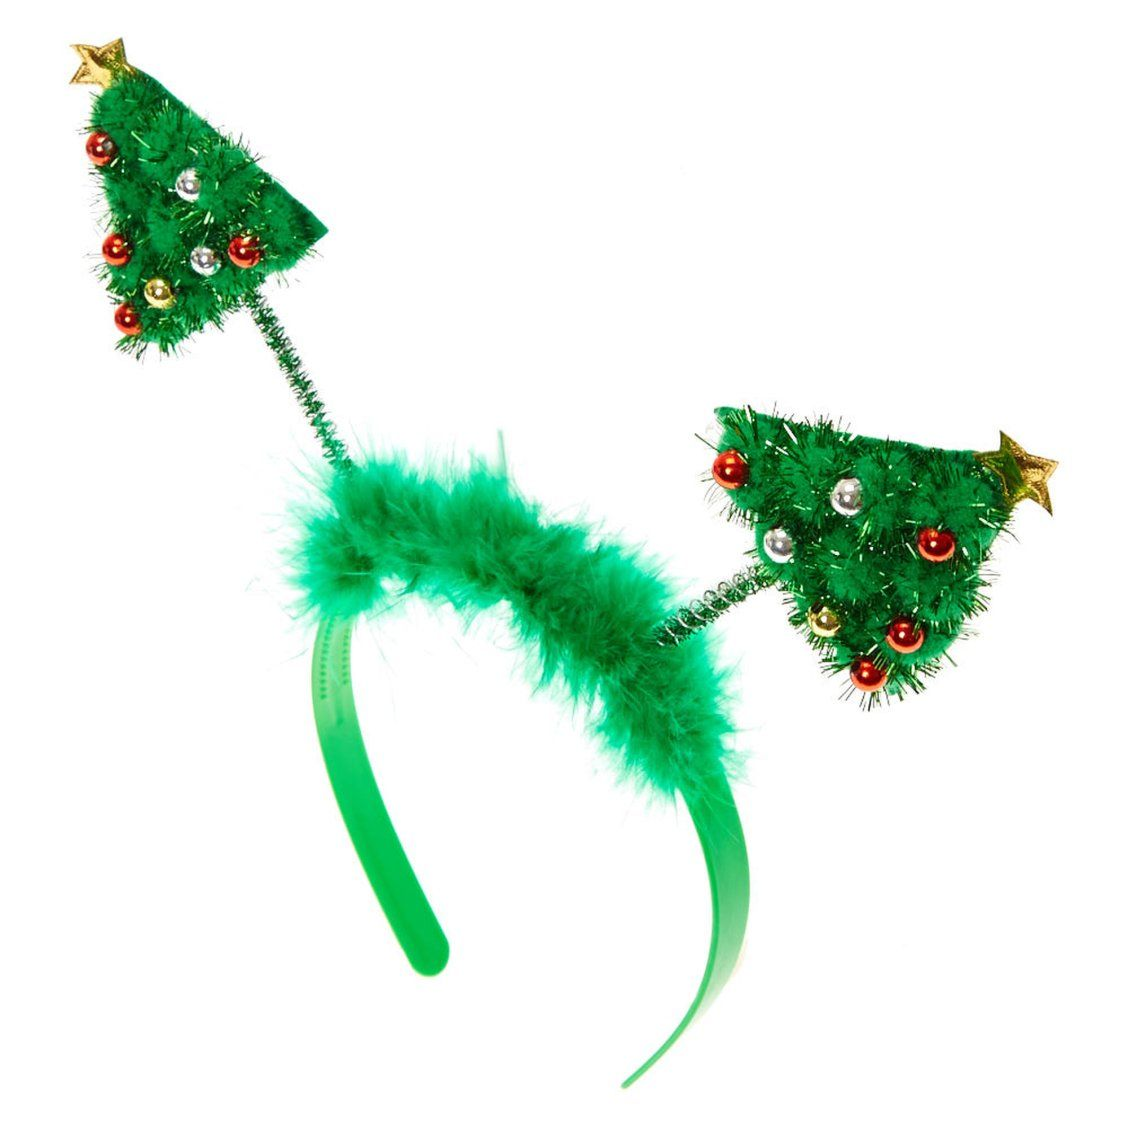 Christmas Tree Deeley Bopper Headband Bop To The Top In Funky Holiday Fashion This Christmas Tree Hello Holiday Fashion Accessories Jewelry Holiday Fashion